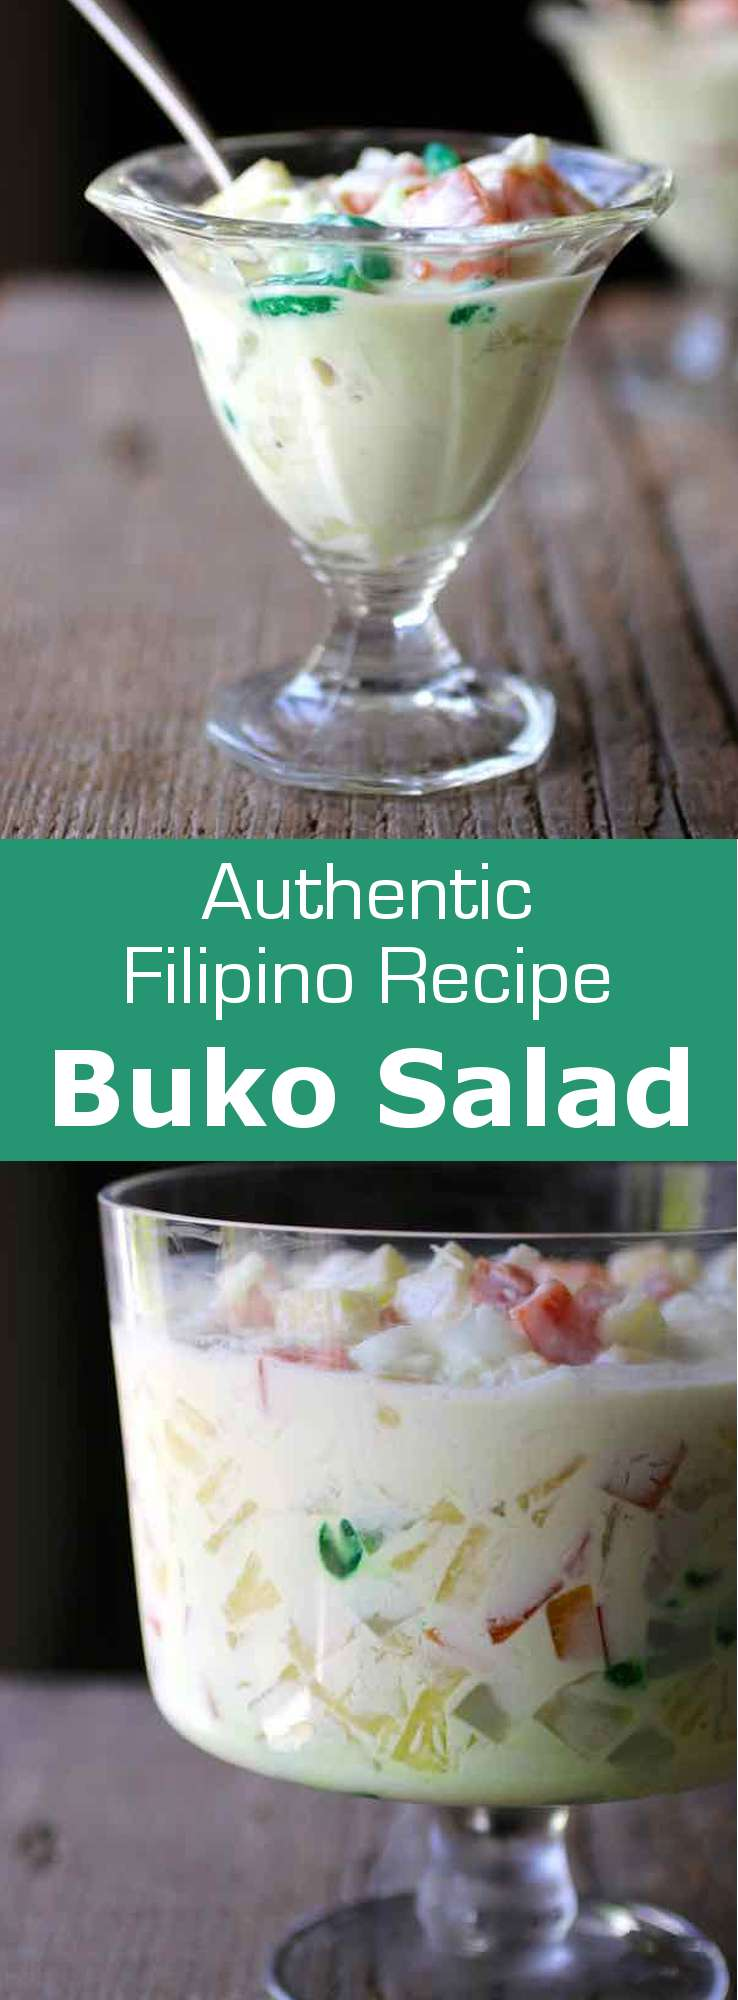 Buko salad is a traditional refreshing Filipino fruit-based dessert that is very easy and quick to prepare. #Philippines #196flavors